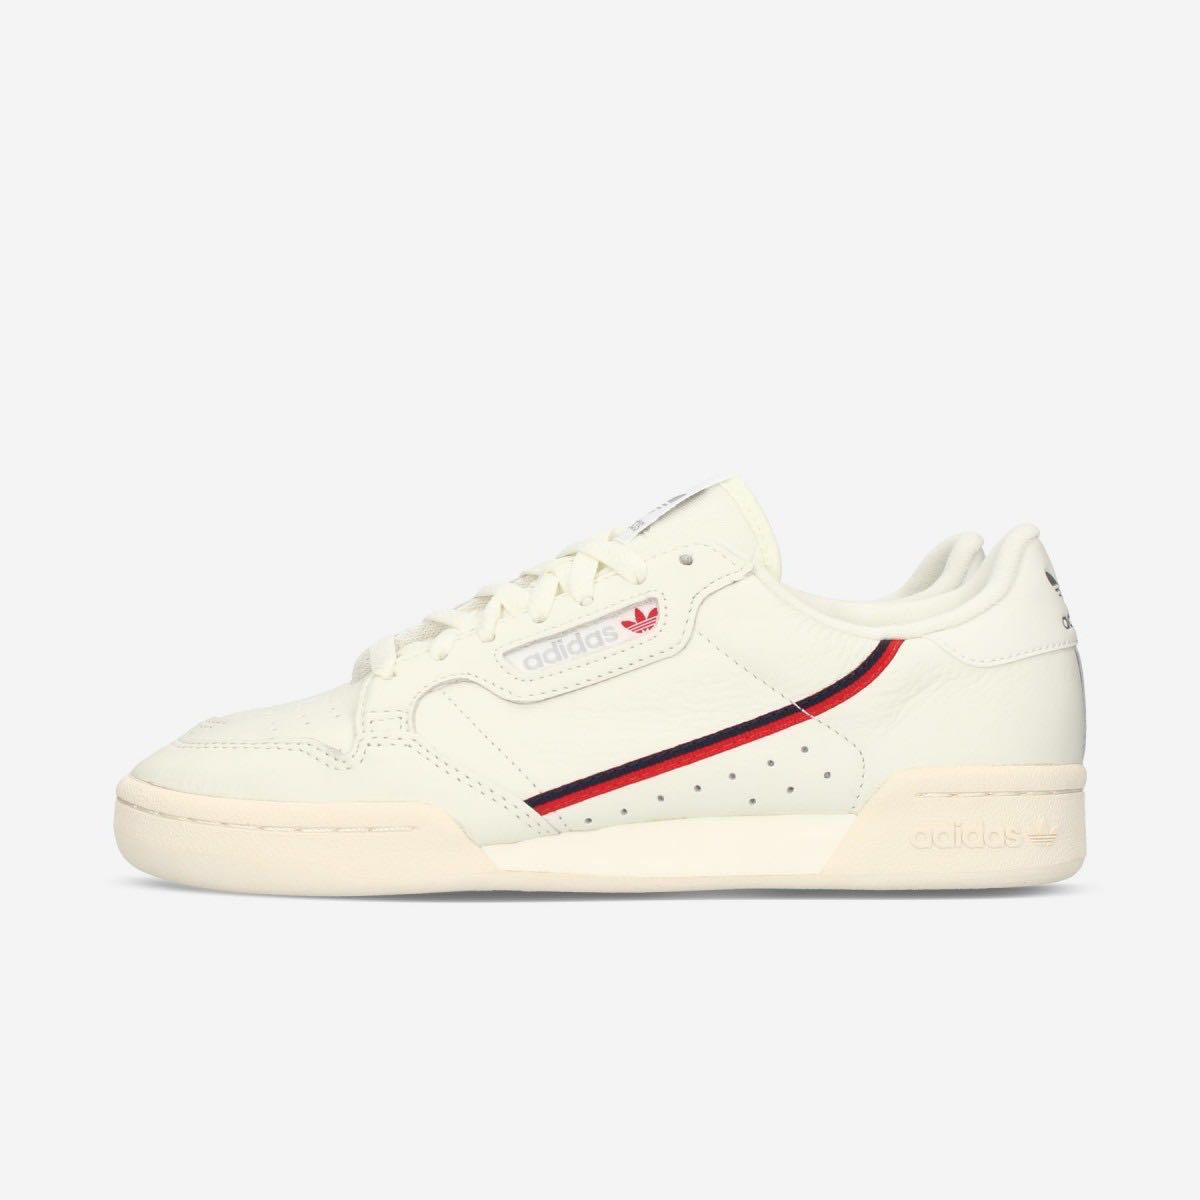 check out b769d 16e3a Adidas Continental 80 Rascal  Running White  (OFF WHITE COLORWAY), Men s  Fashion, Footwear, Sneakers on Carousell